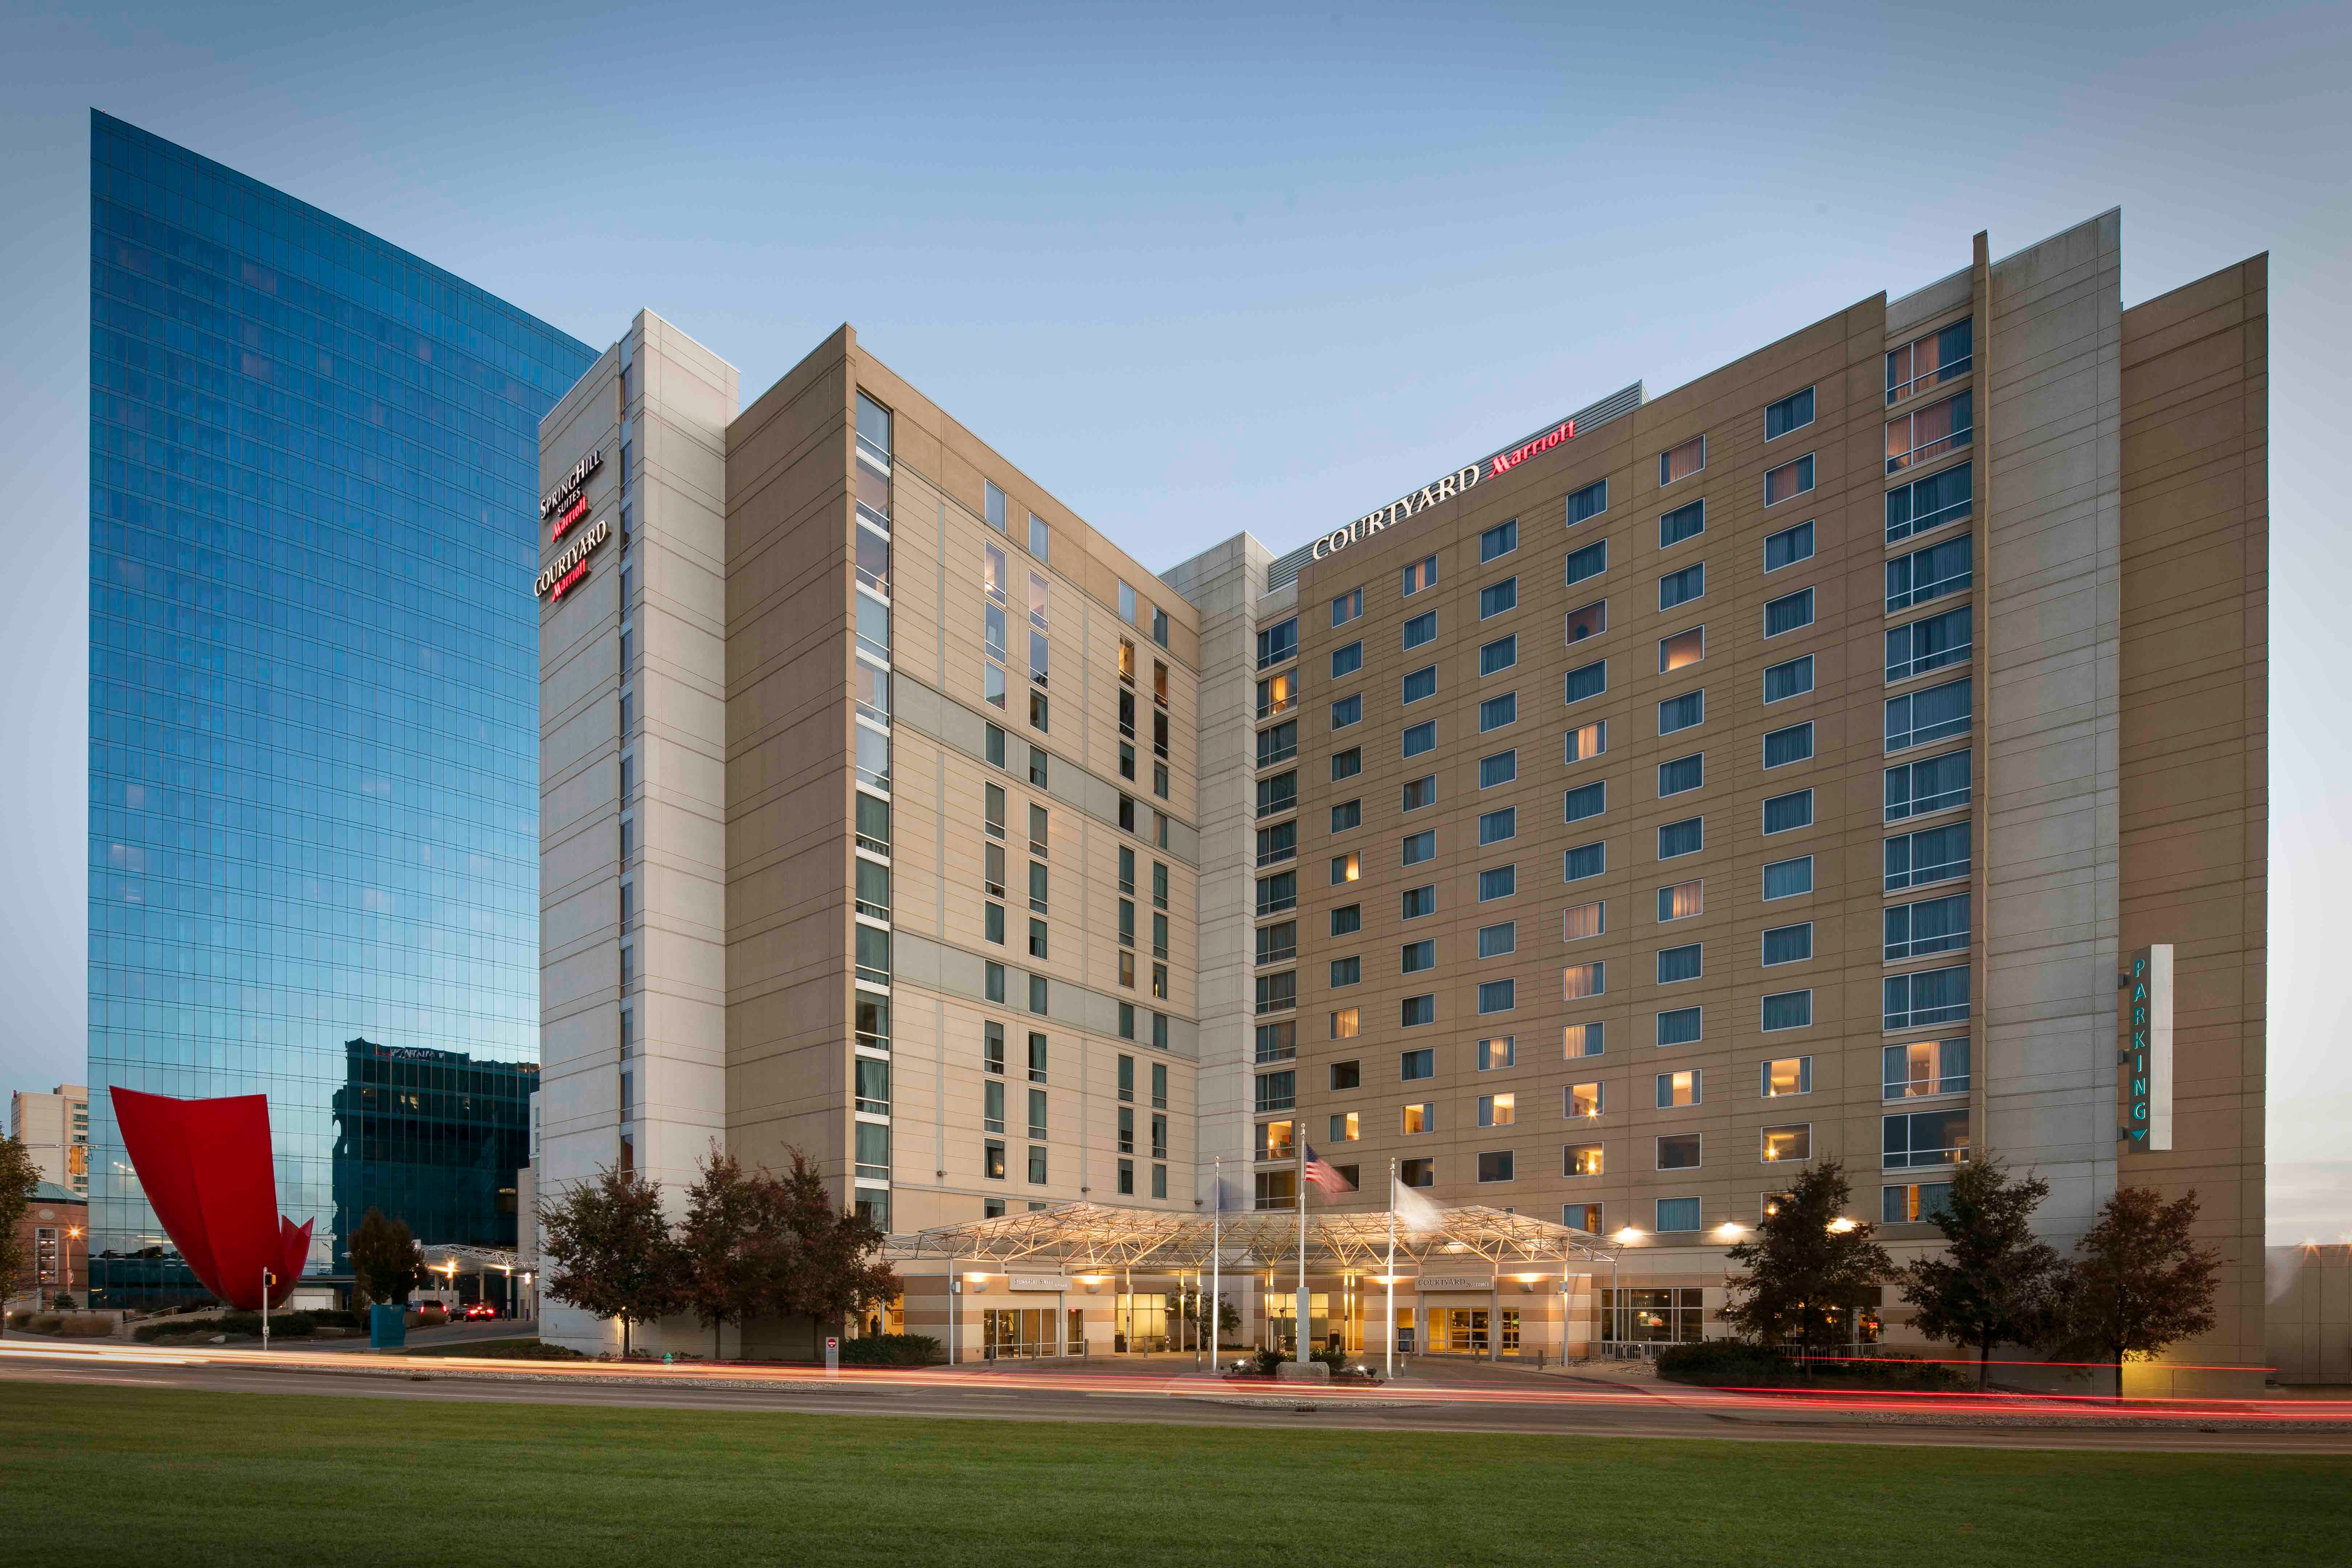 SpringHill Suites by Marriott Indianapolis Downtown image 0